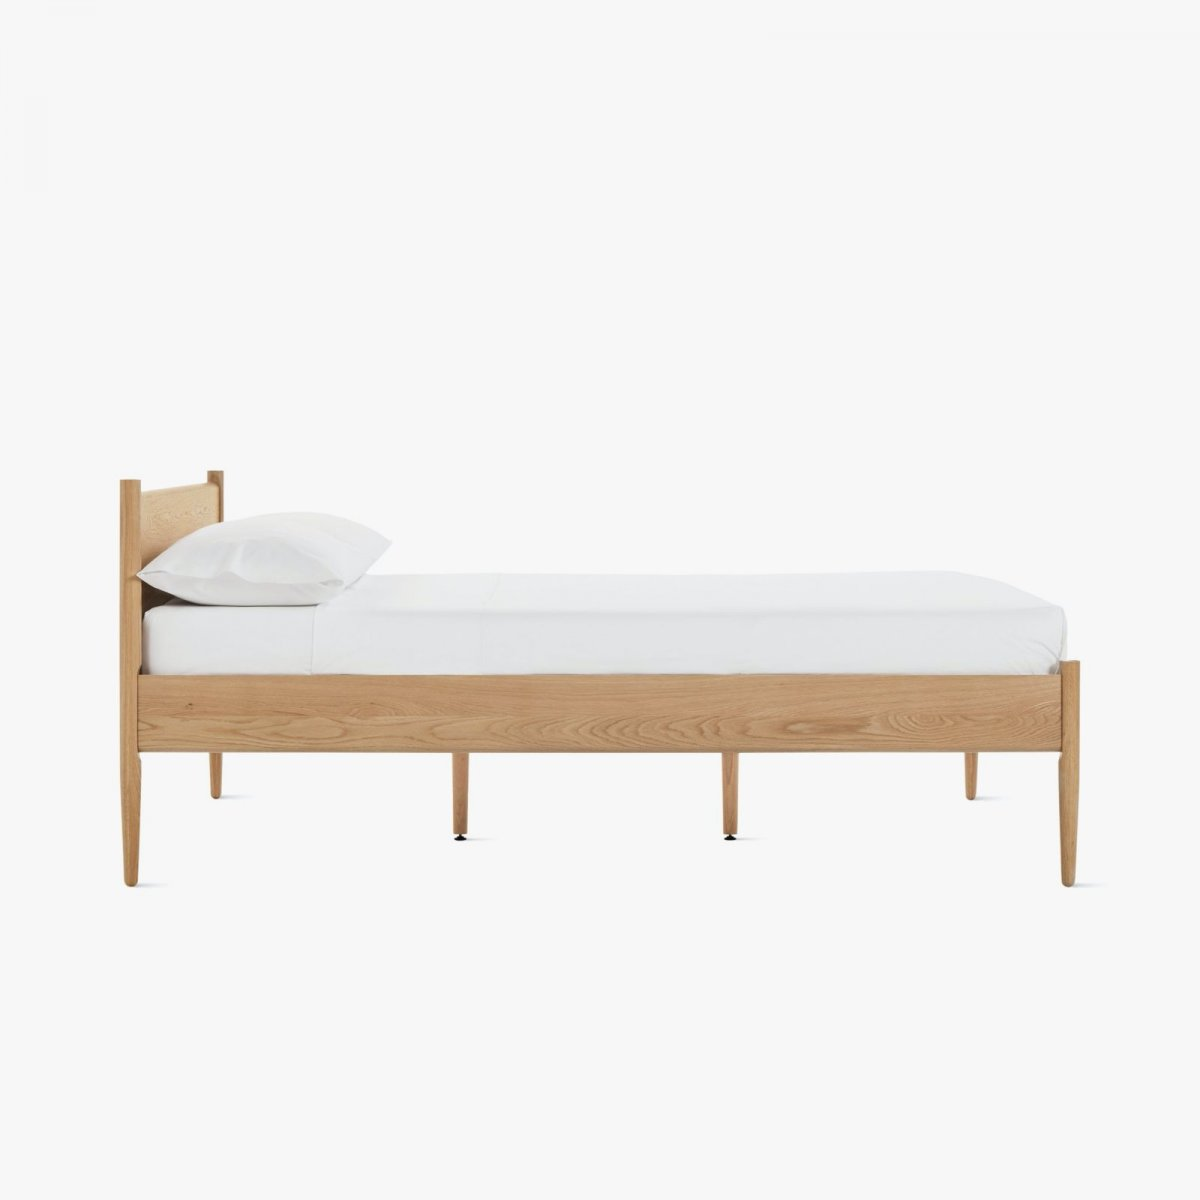 Cove Bed, oak, side view.